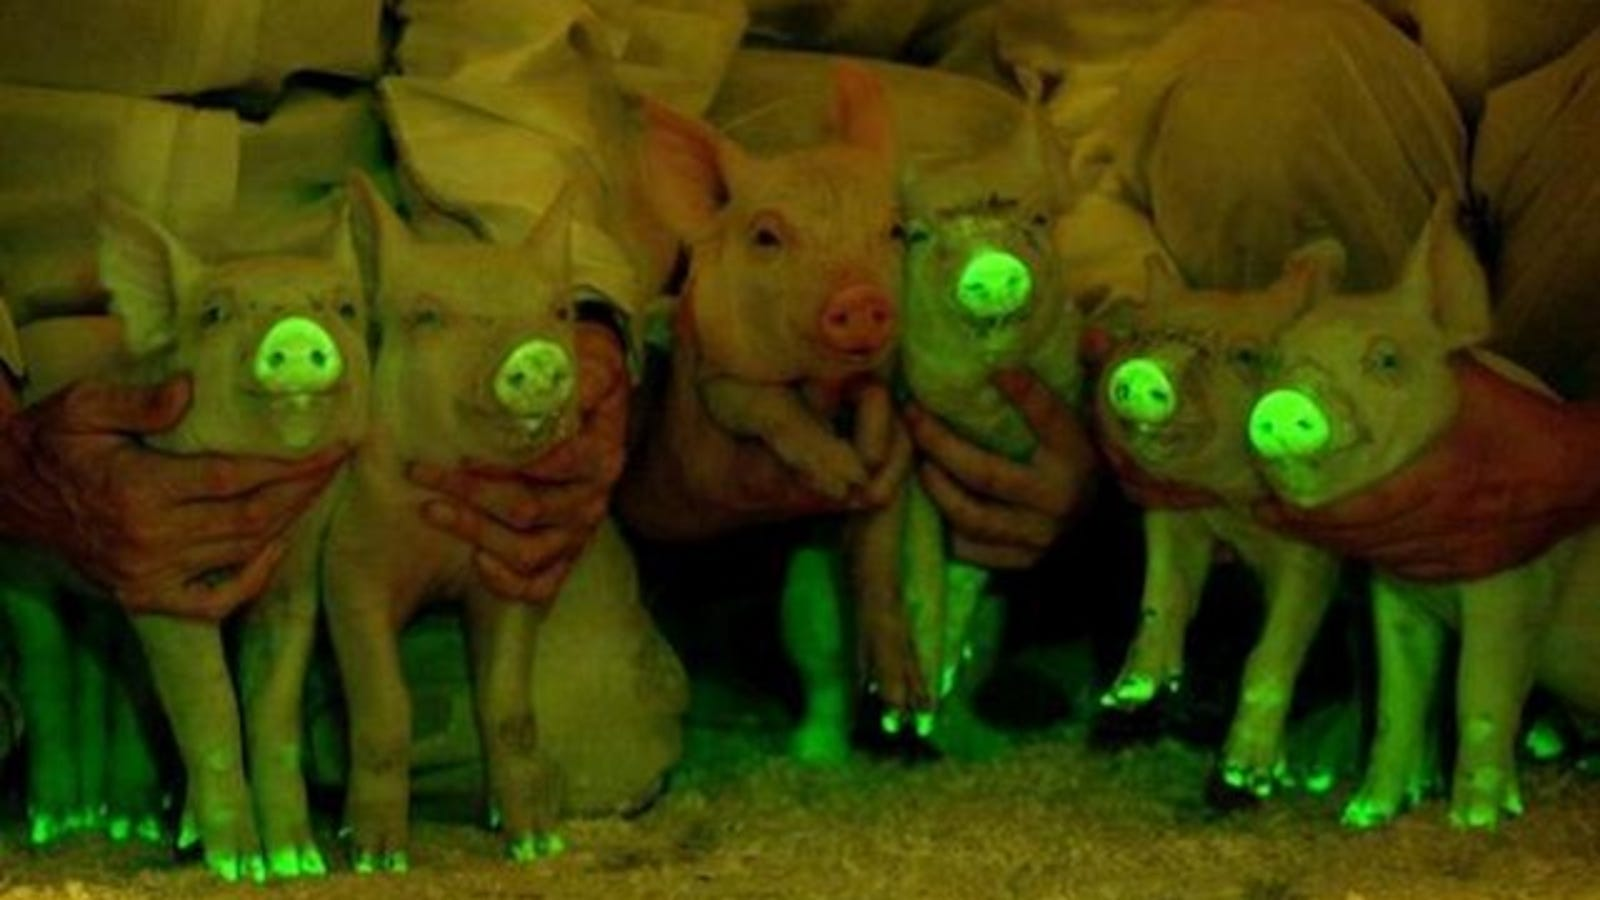 These Pigs Glow-in-the-Dark to Save Lives